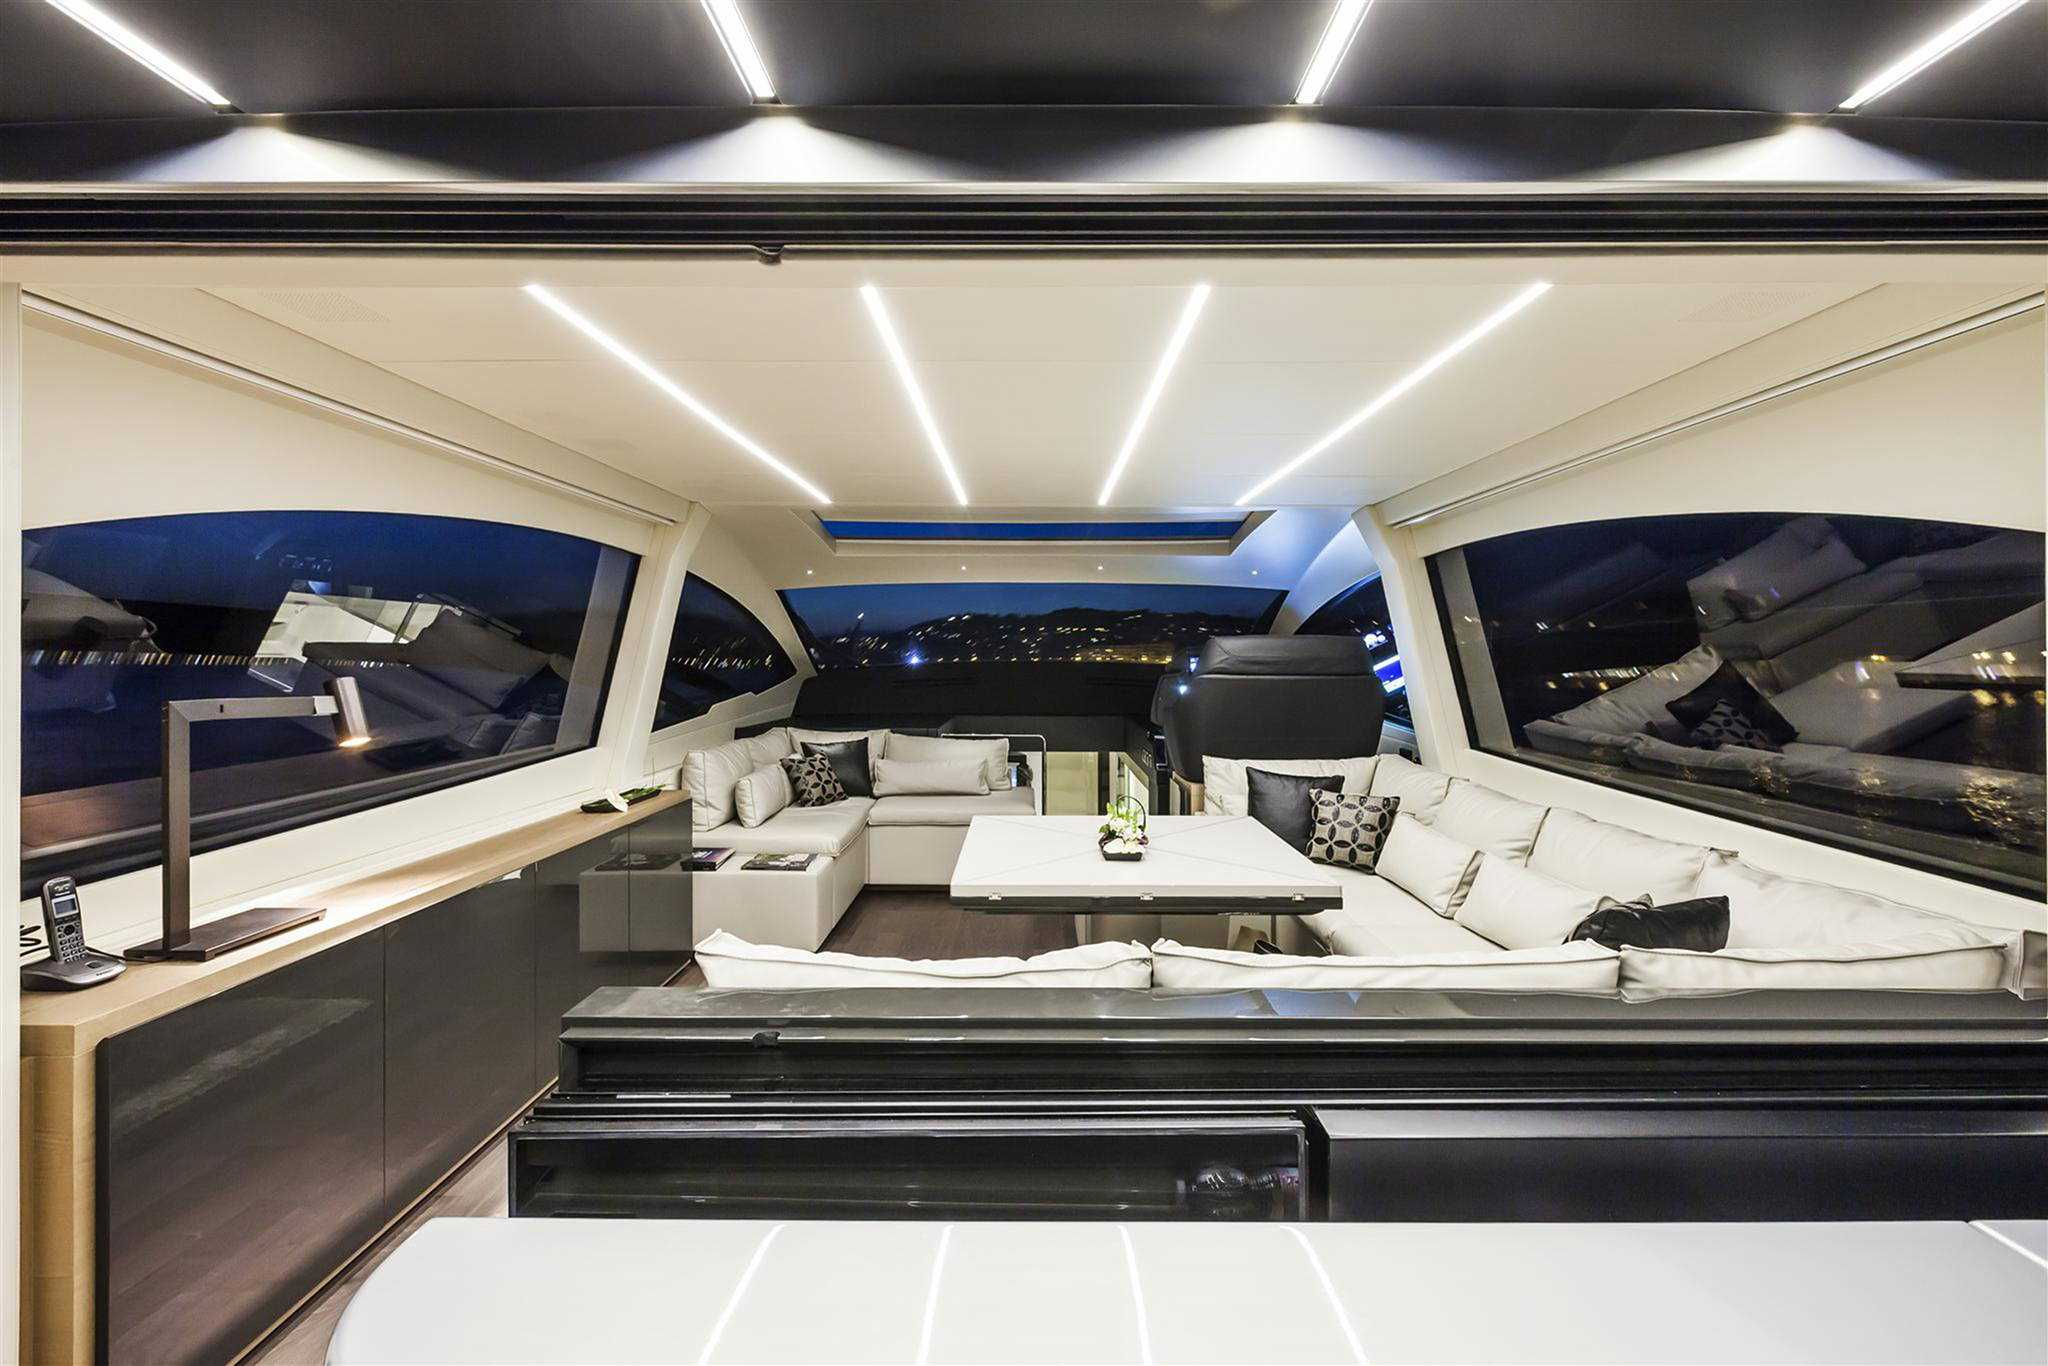 2018 Pershing 70 Luxury Yacht Salon at night